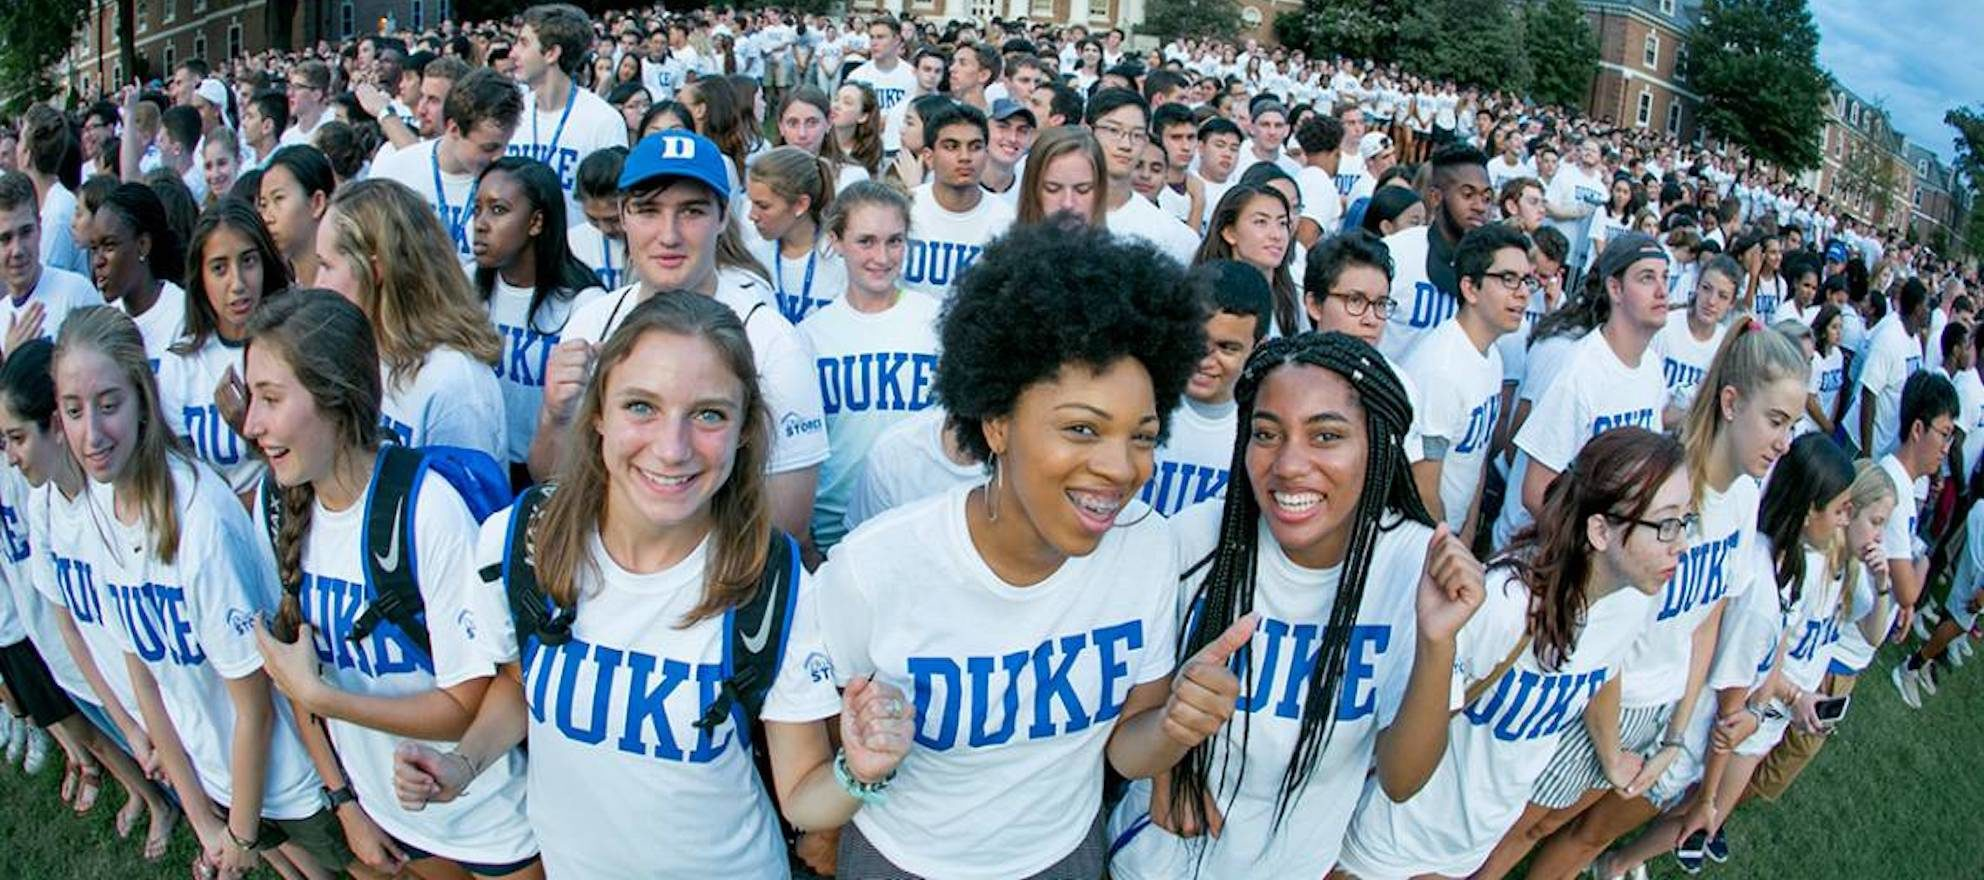 Kentucky real estate firm cuts ties with Realtor after racist Facebook comment about Duke University